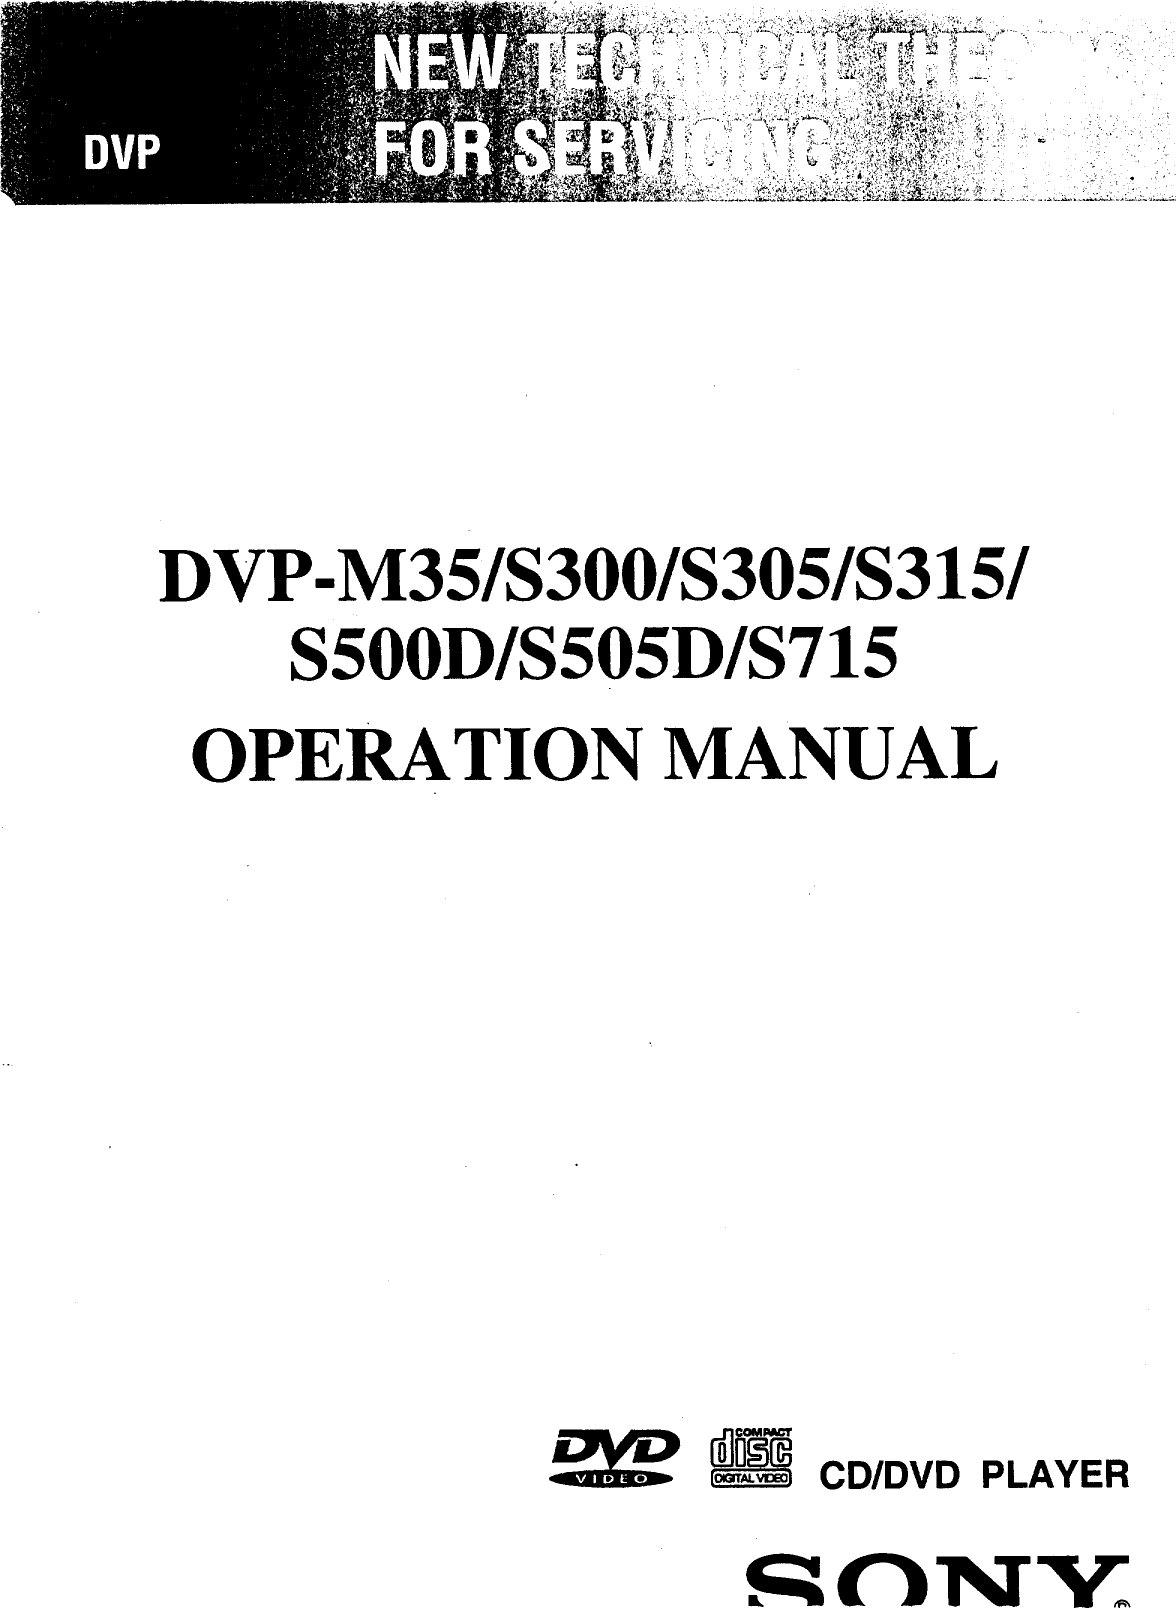 Sony DVP S500D User Manual CD/DVD SYSTEM Manuals And